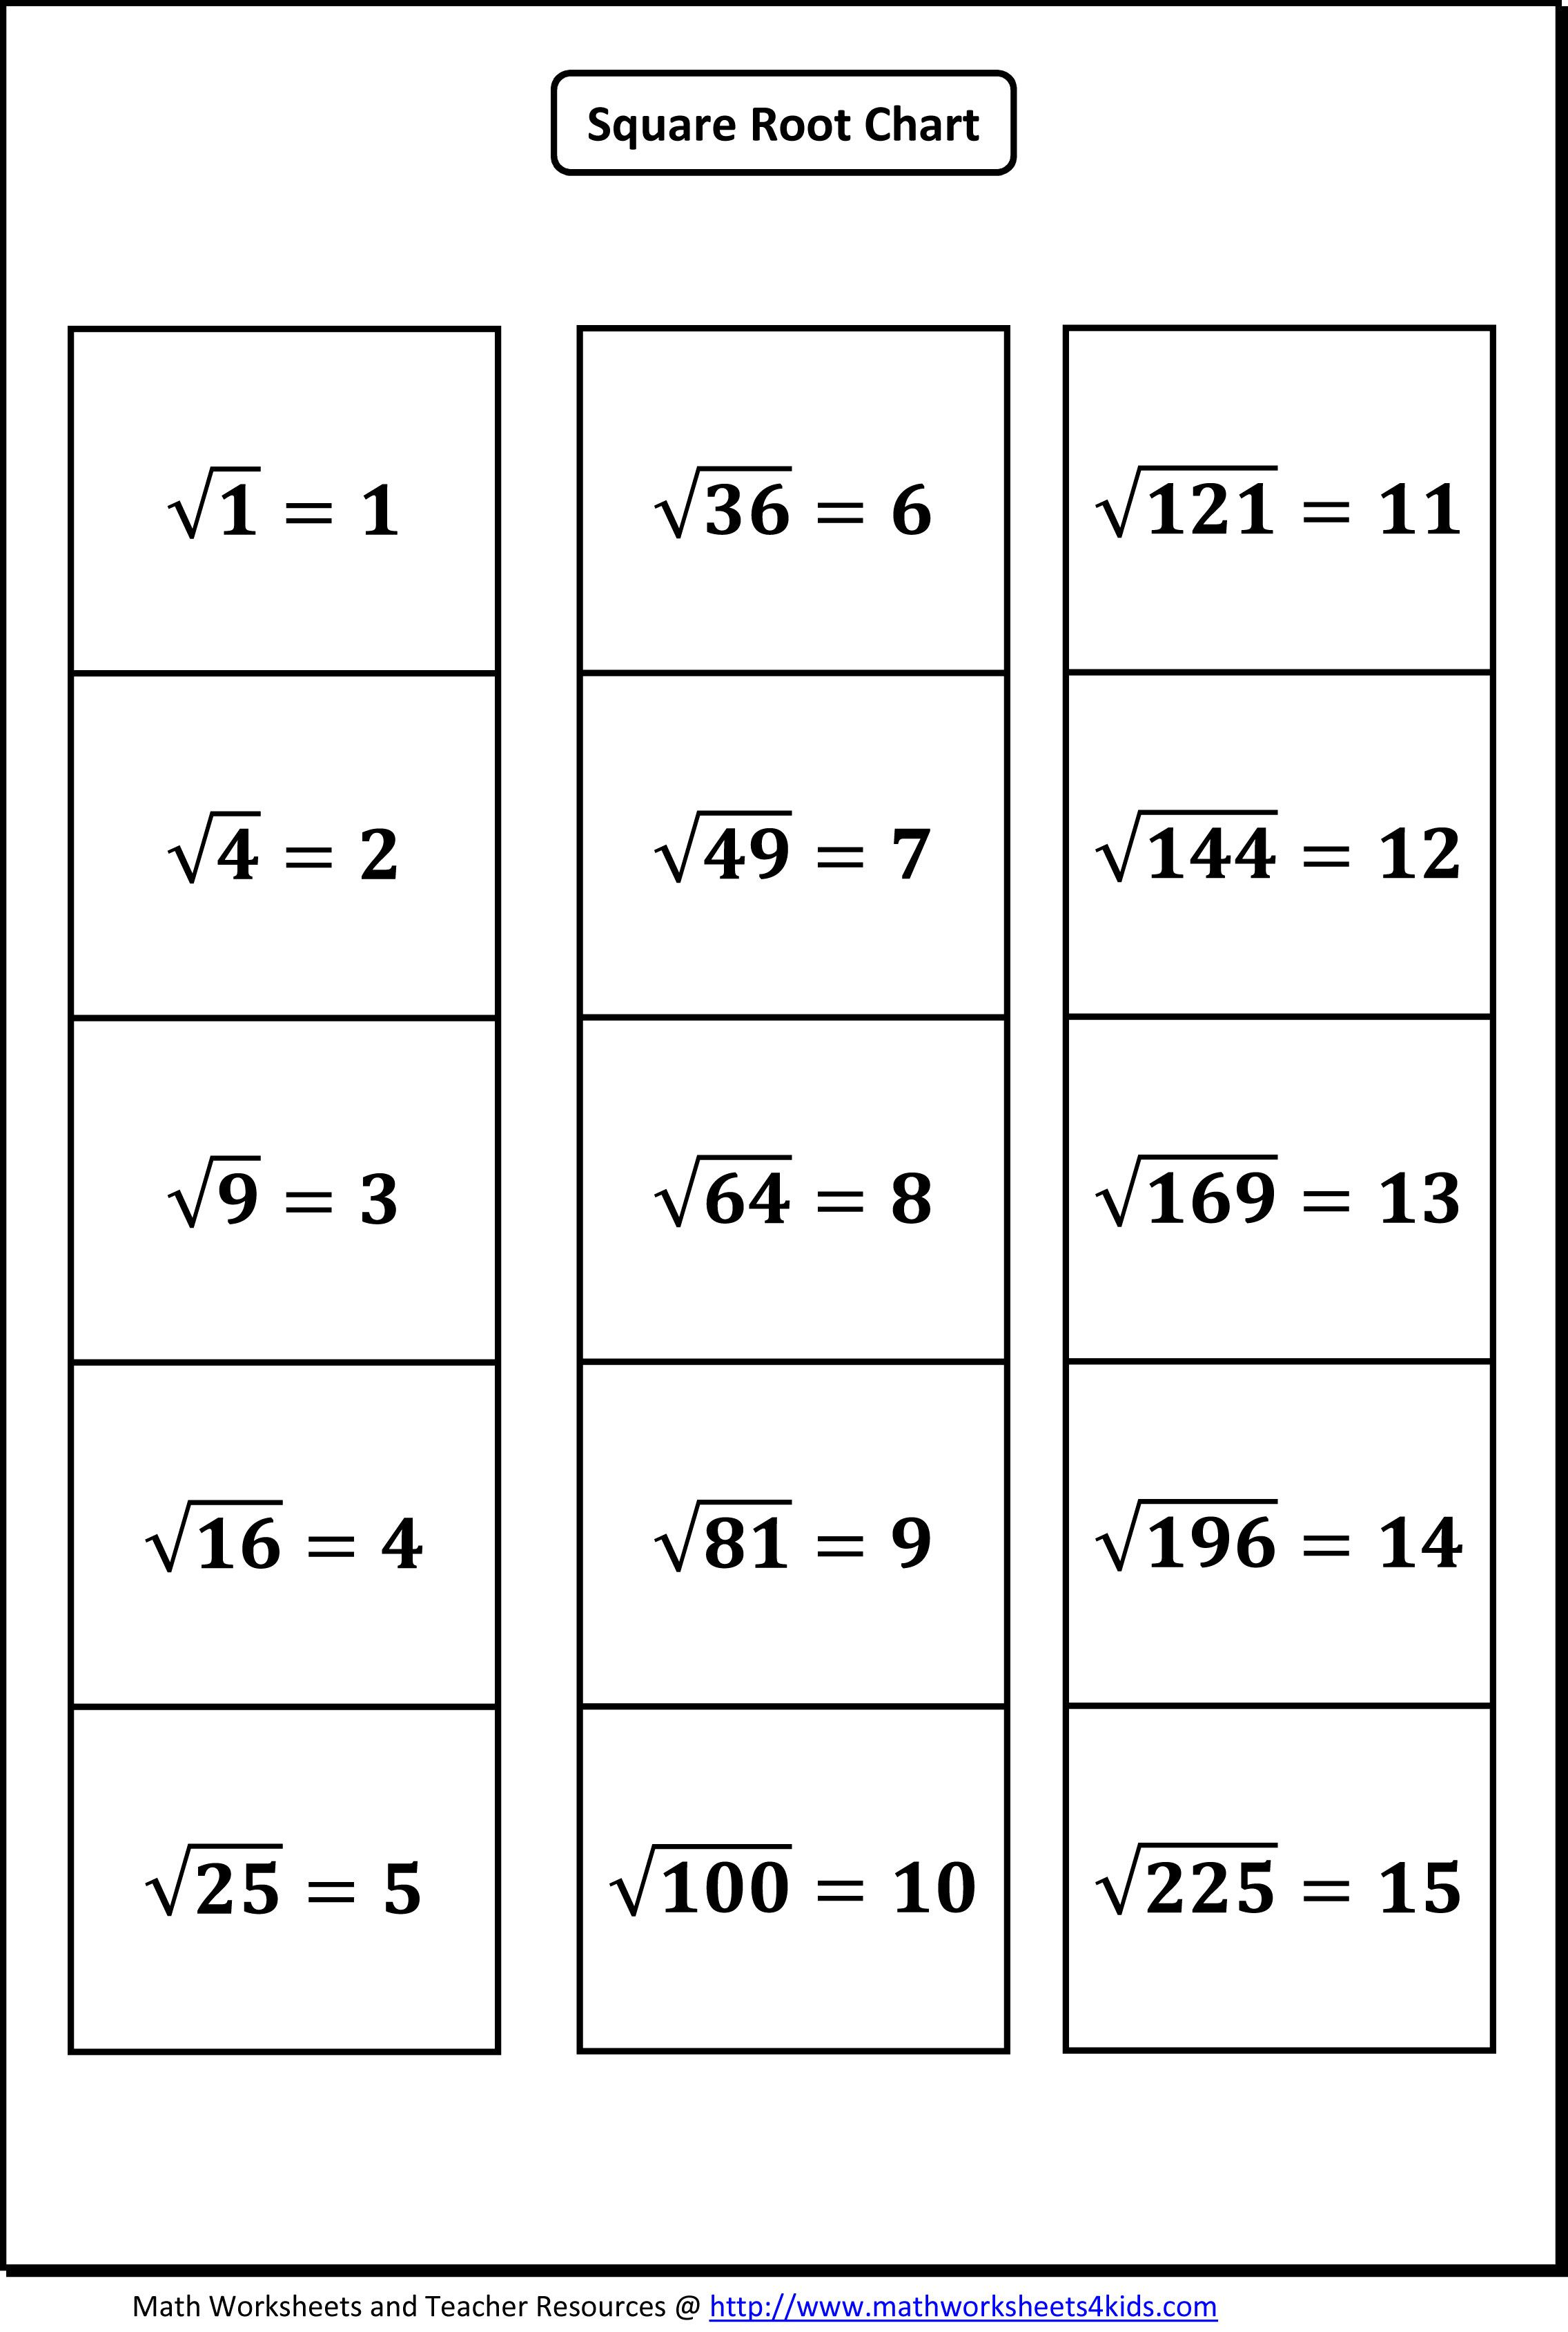 Worksheets Squares And Cubes Worksheet square root worksheets find the of whole numbers worksheets